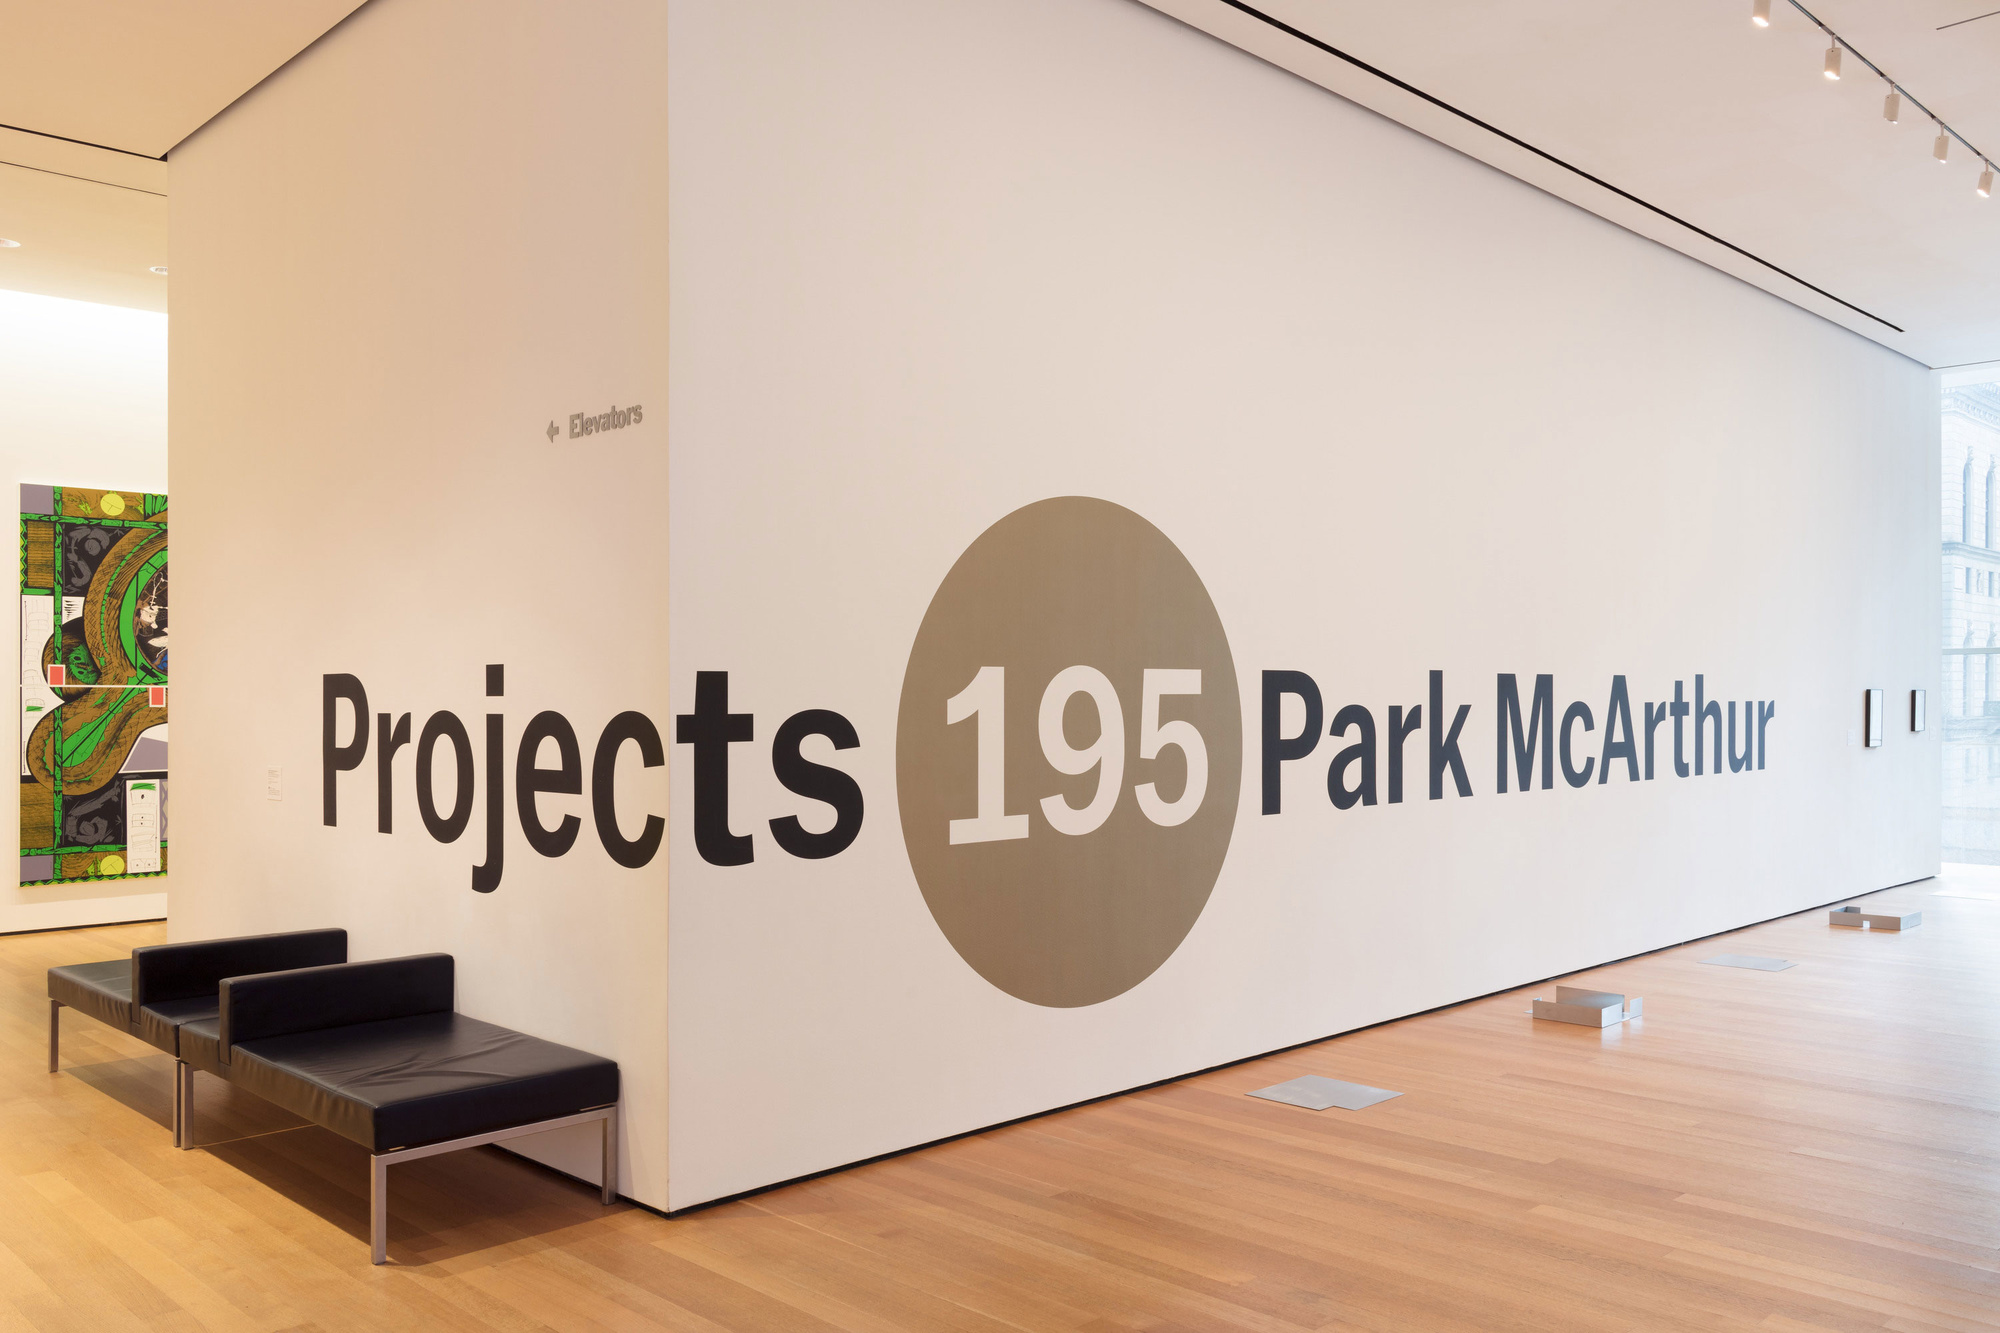 Installation view of the exhibition Projects 195: Park McArthur, The Museum of Modern Art, October 27, 2018–January 27, 2019. Photo: Denis Doorly